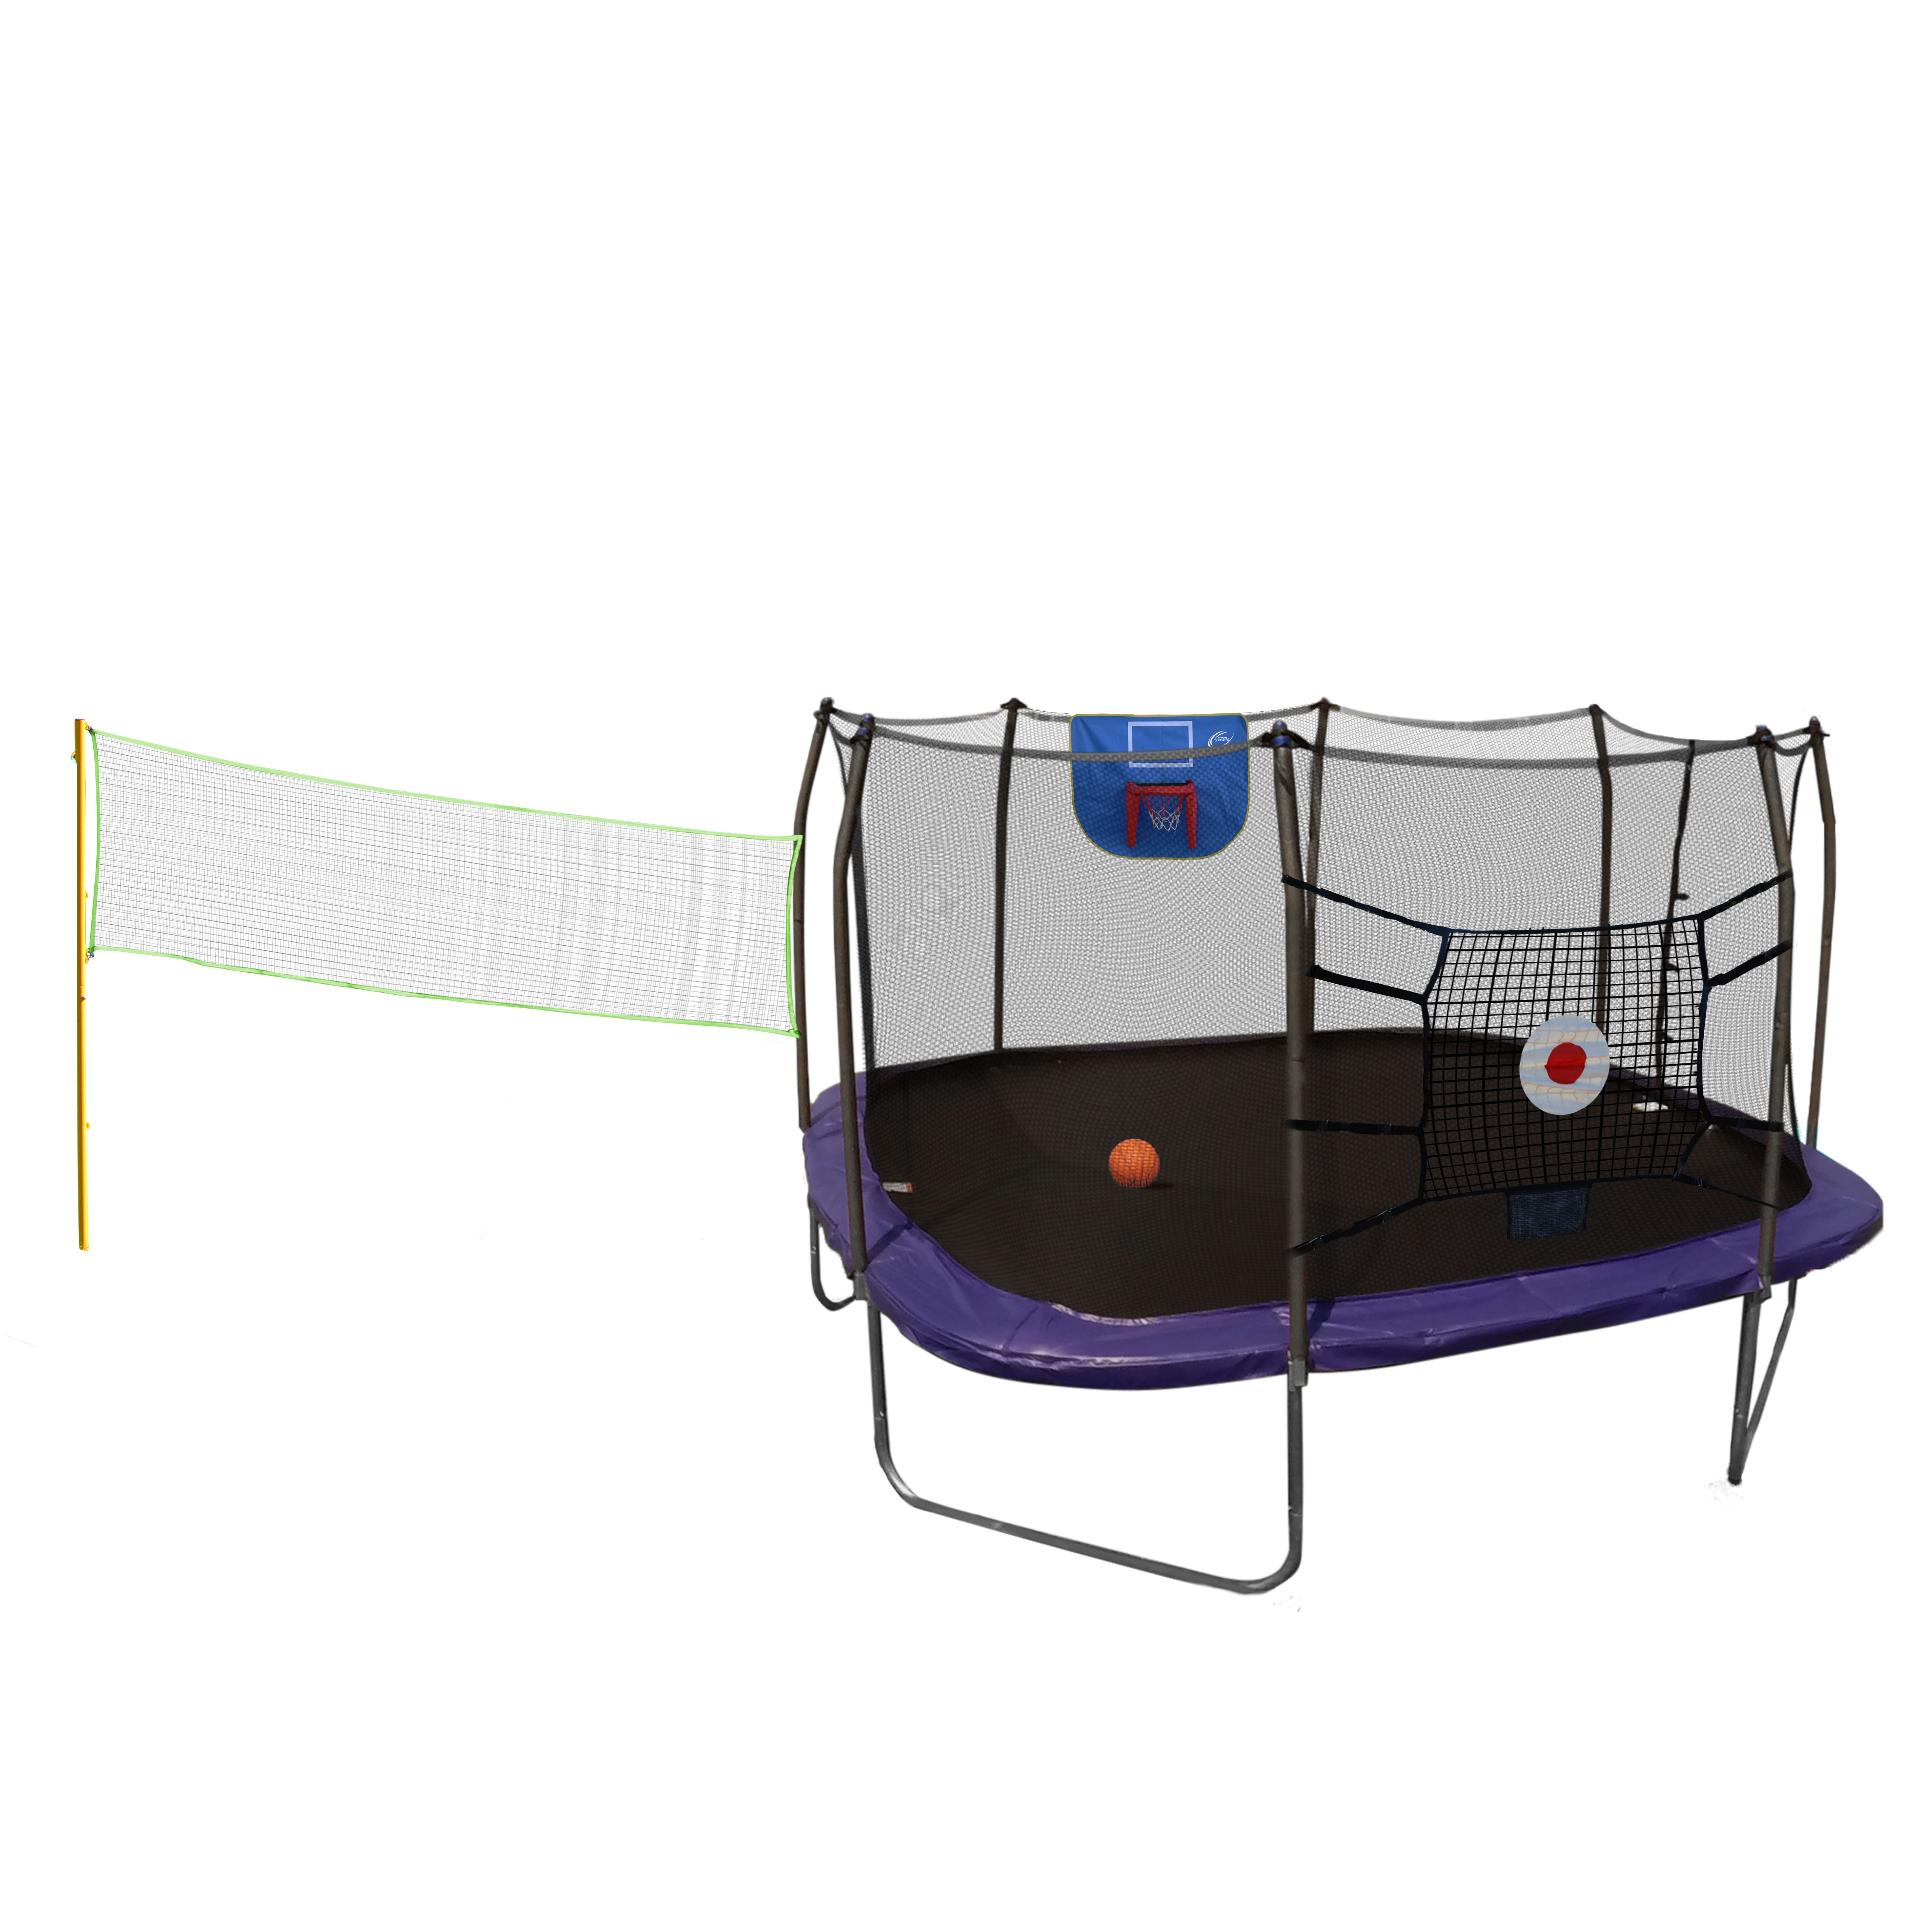 Skywalker Trampolines Square Sports Arena 15-Foot Trampoline, with ...